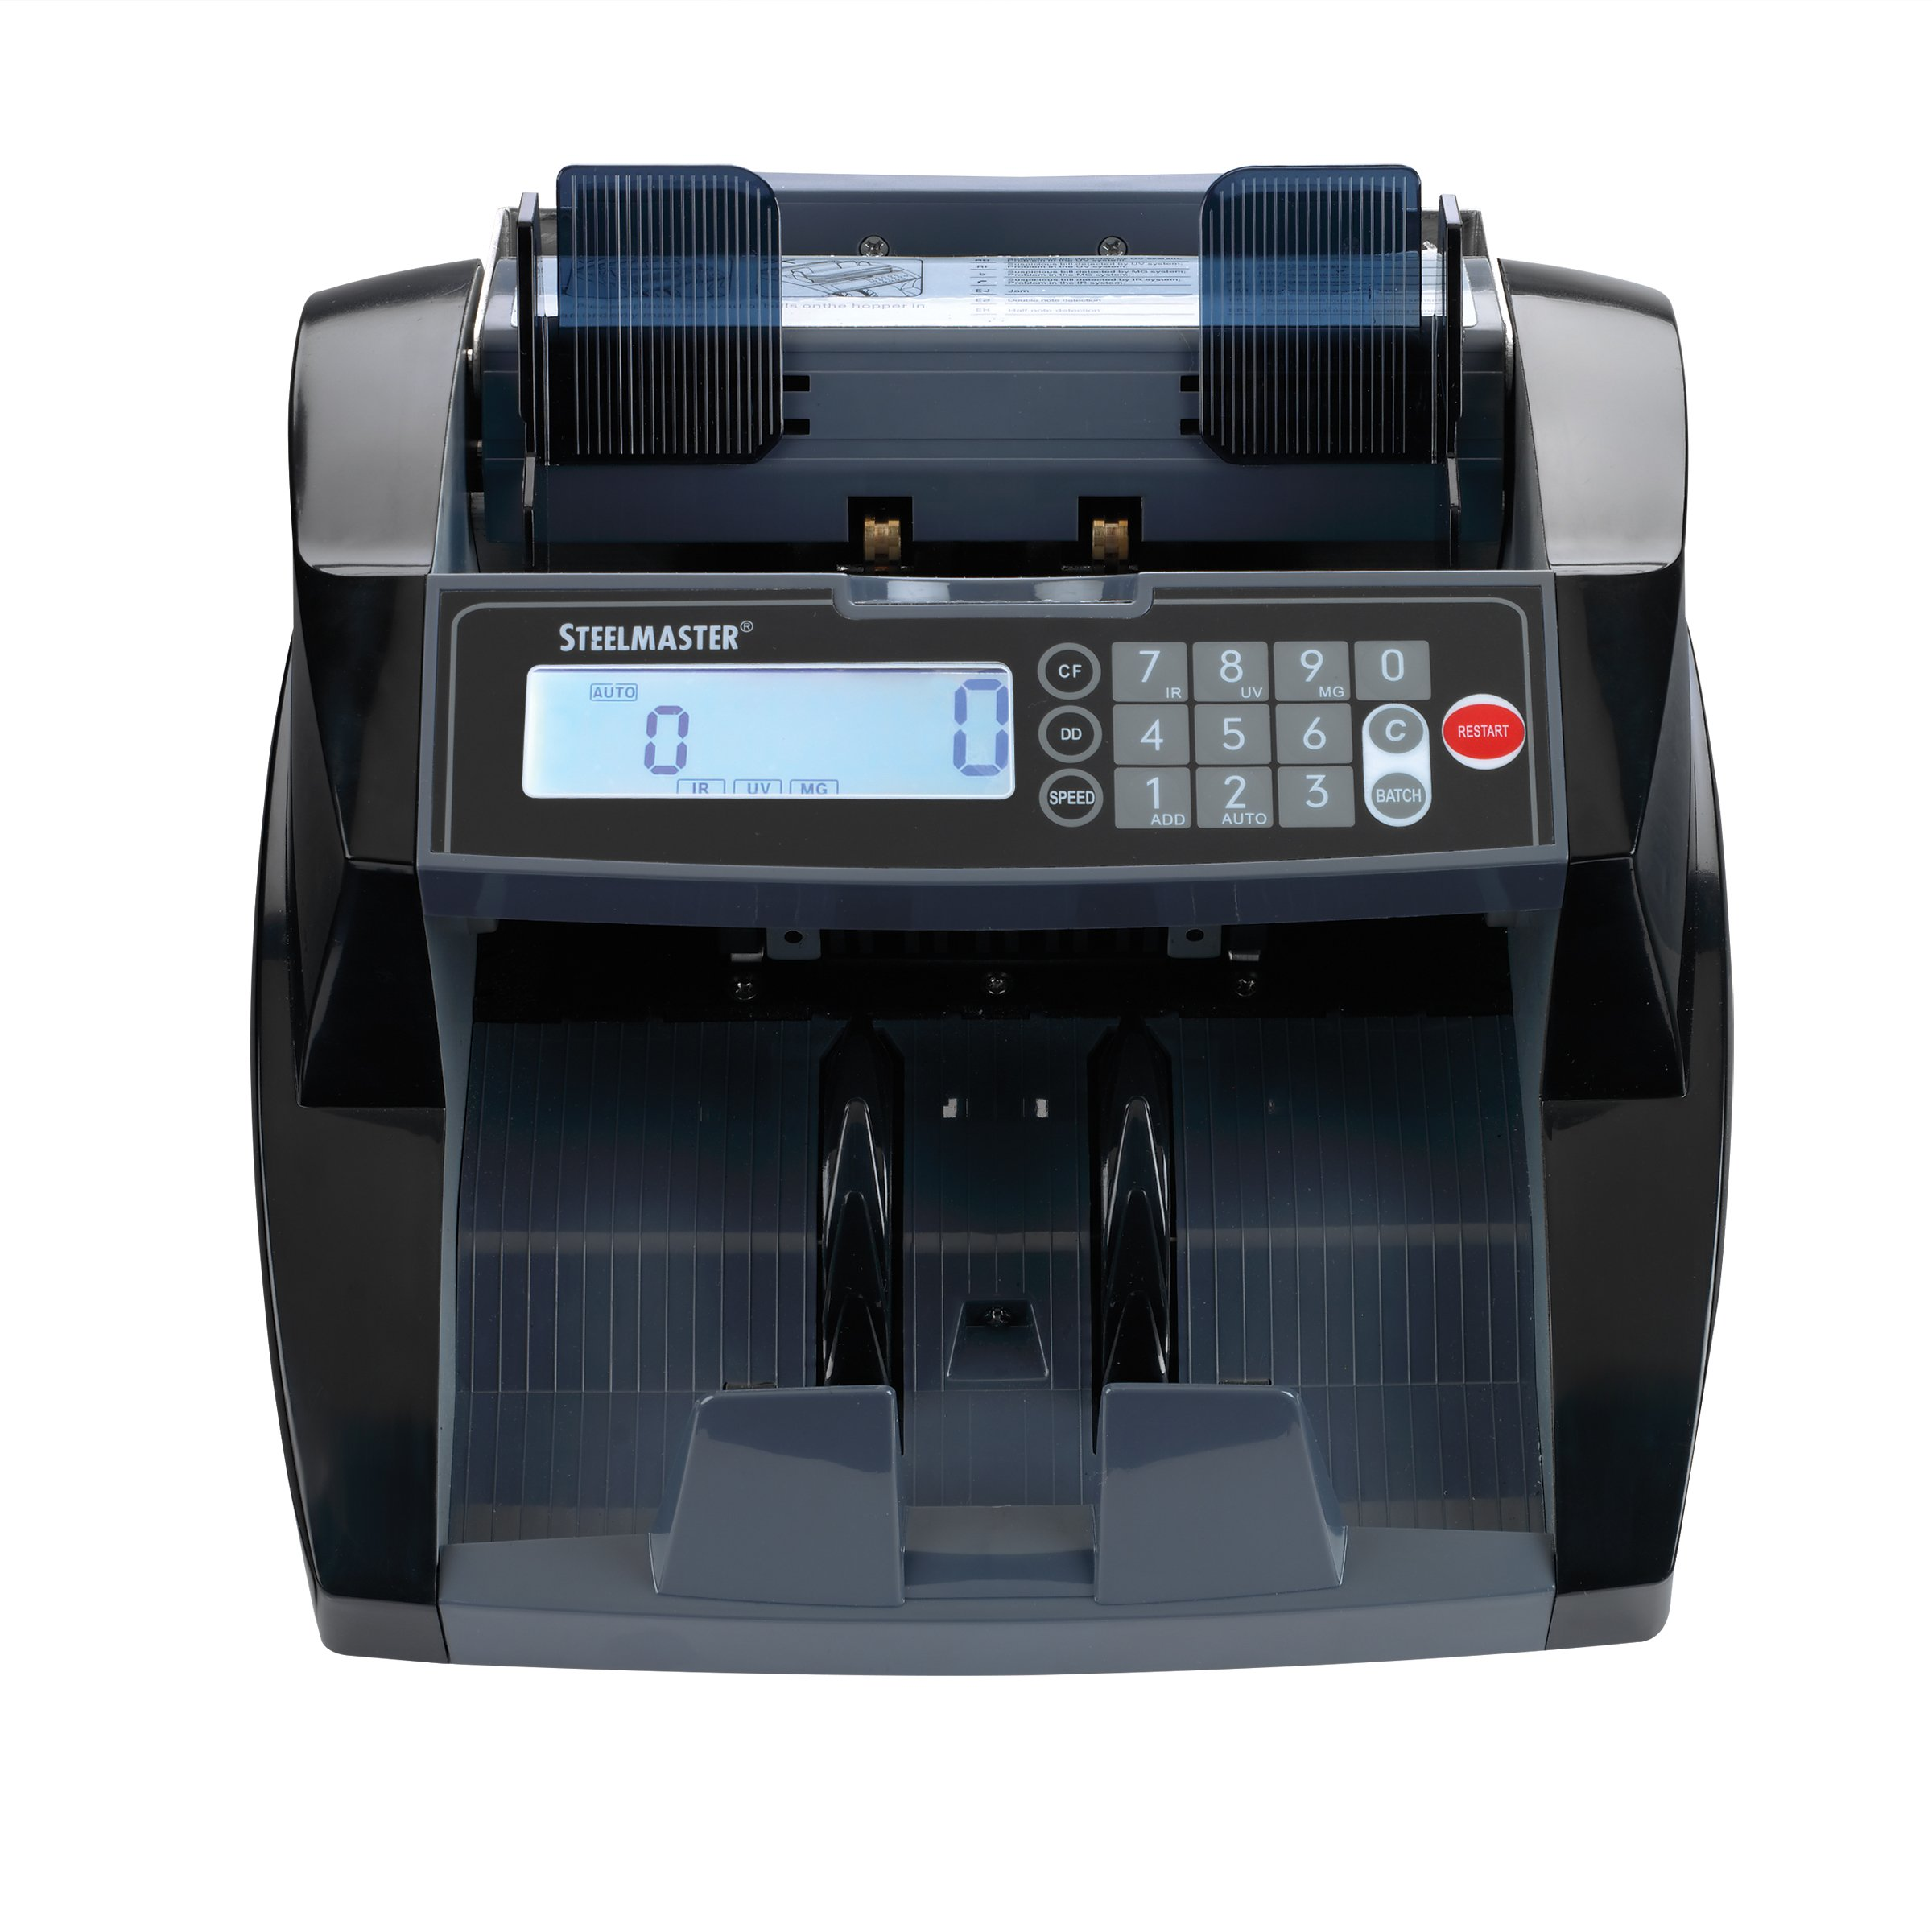 Steelmaster Premium Front-Loading Bill Counter with UV, MG, IR Counterfeit Detection, Black (4850)